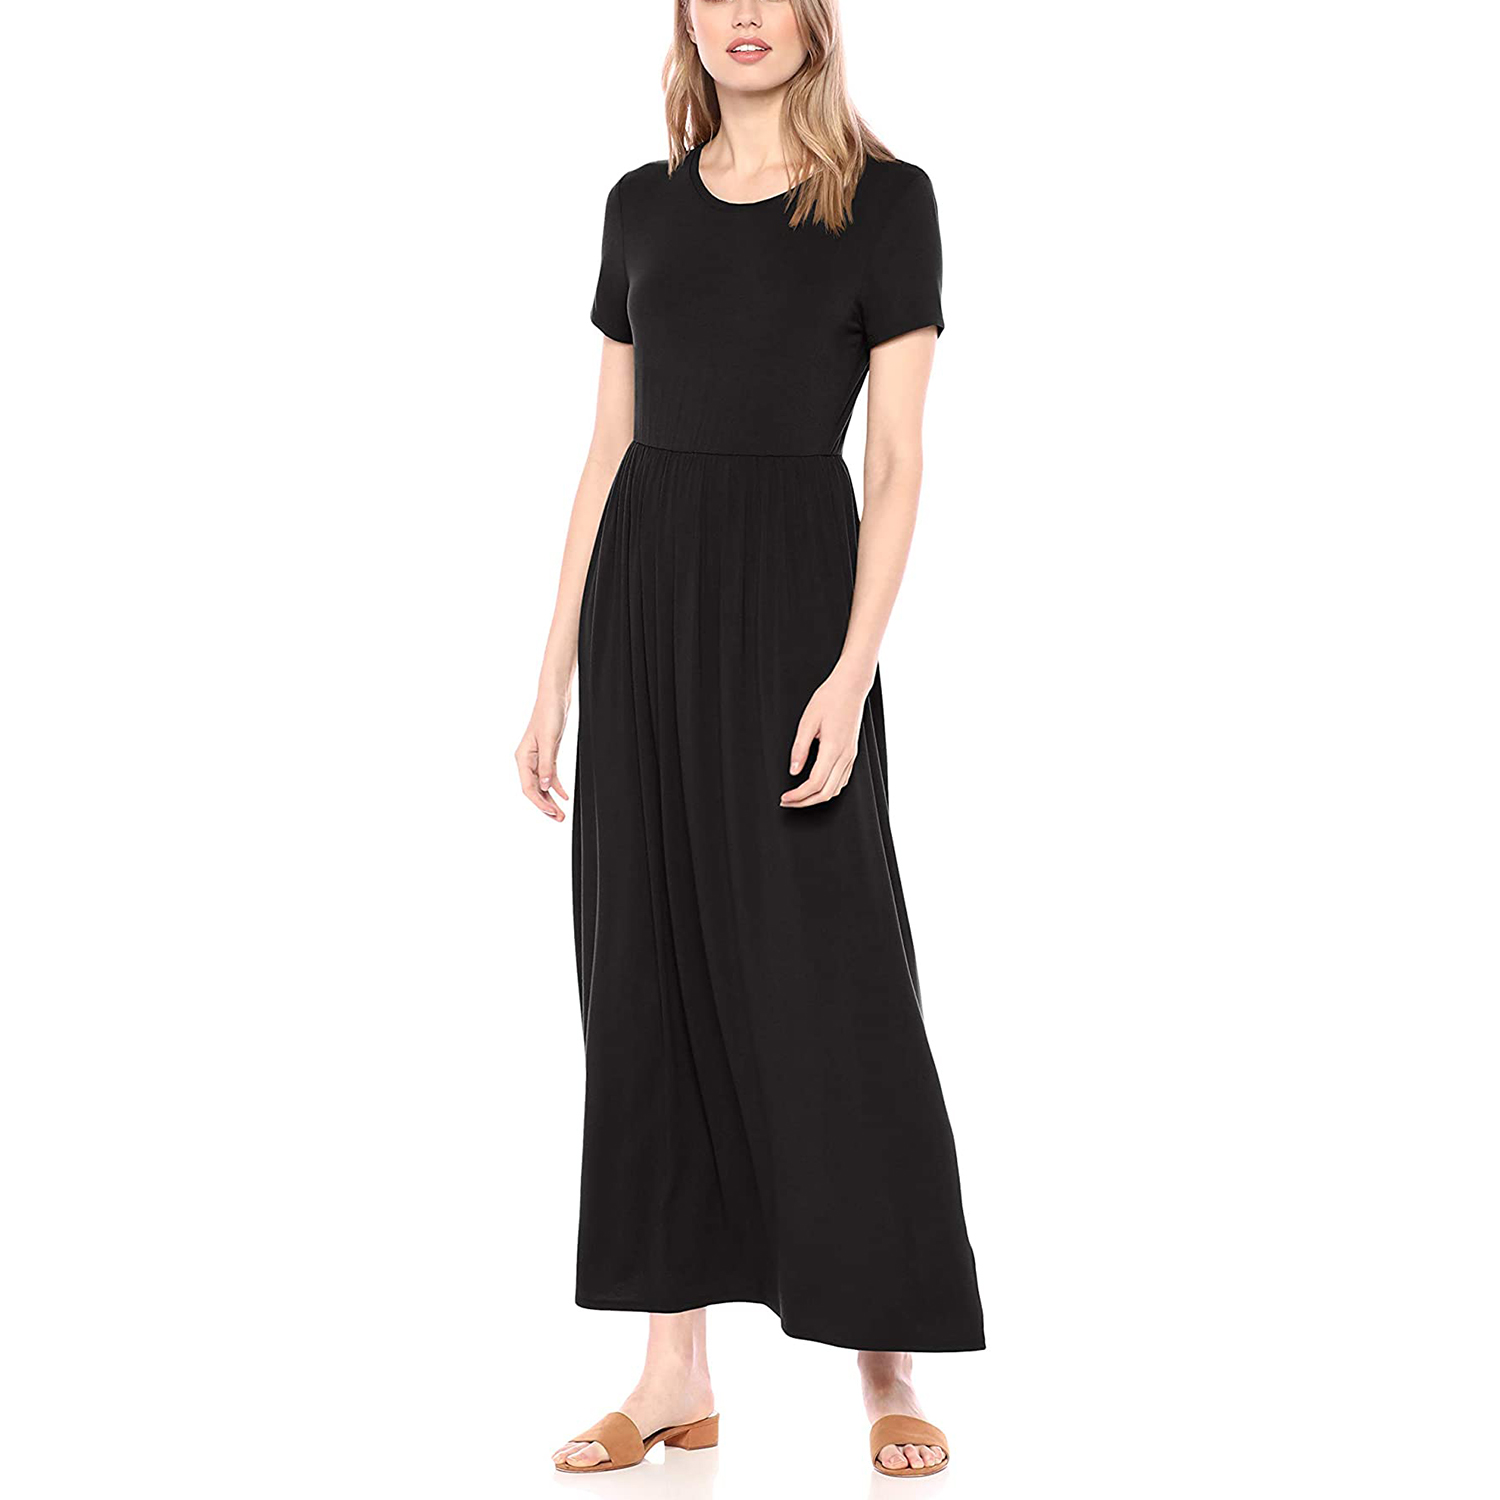 Amazon Essentials Women's Short Sleeve Waisted Maxi Dress